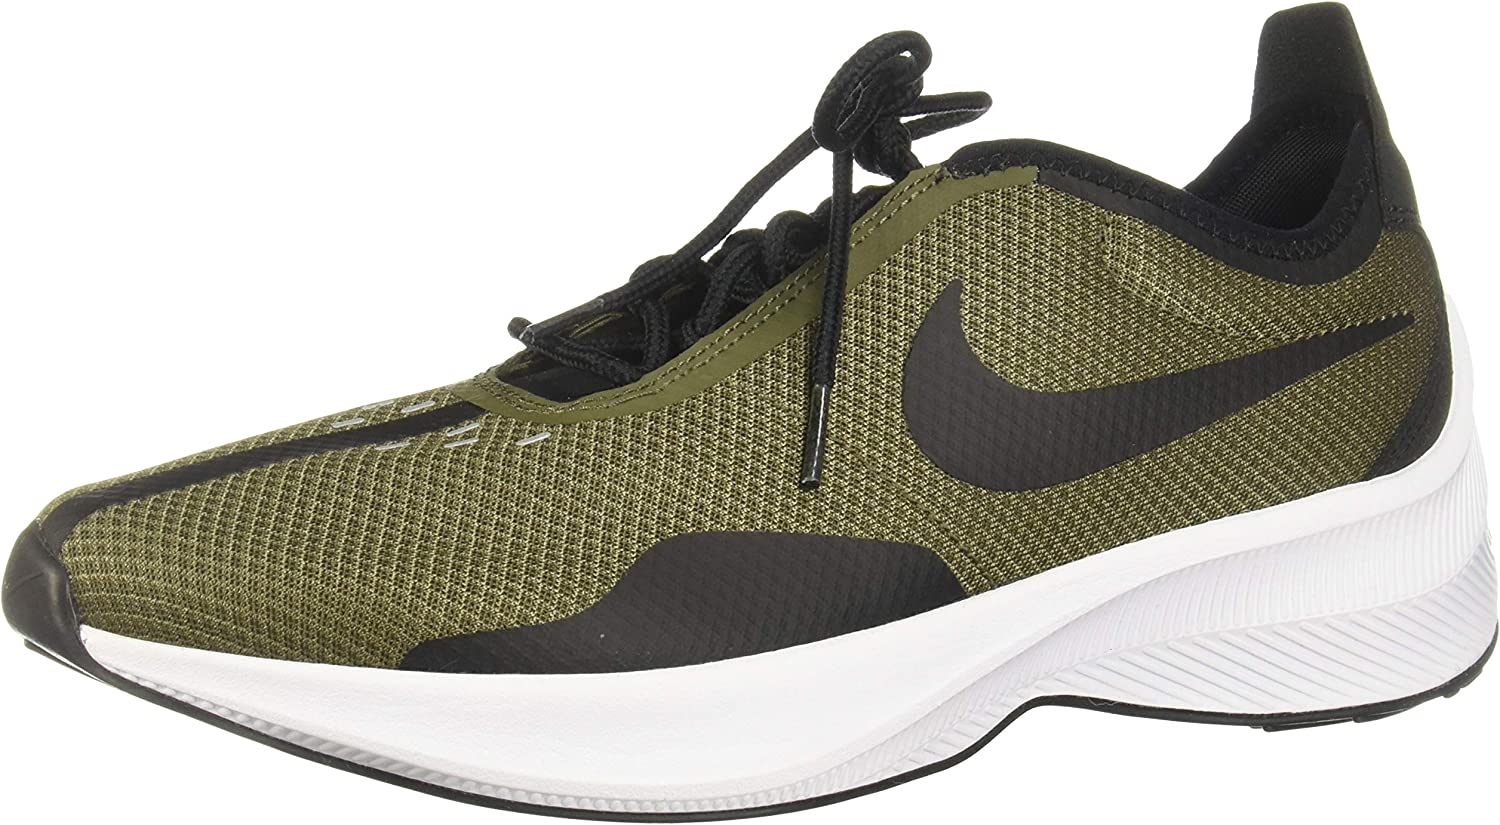 Nike Men's Exp-z07 Competition Running shoes